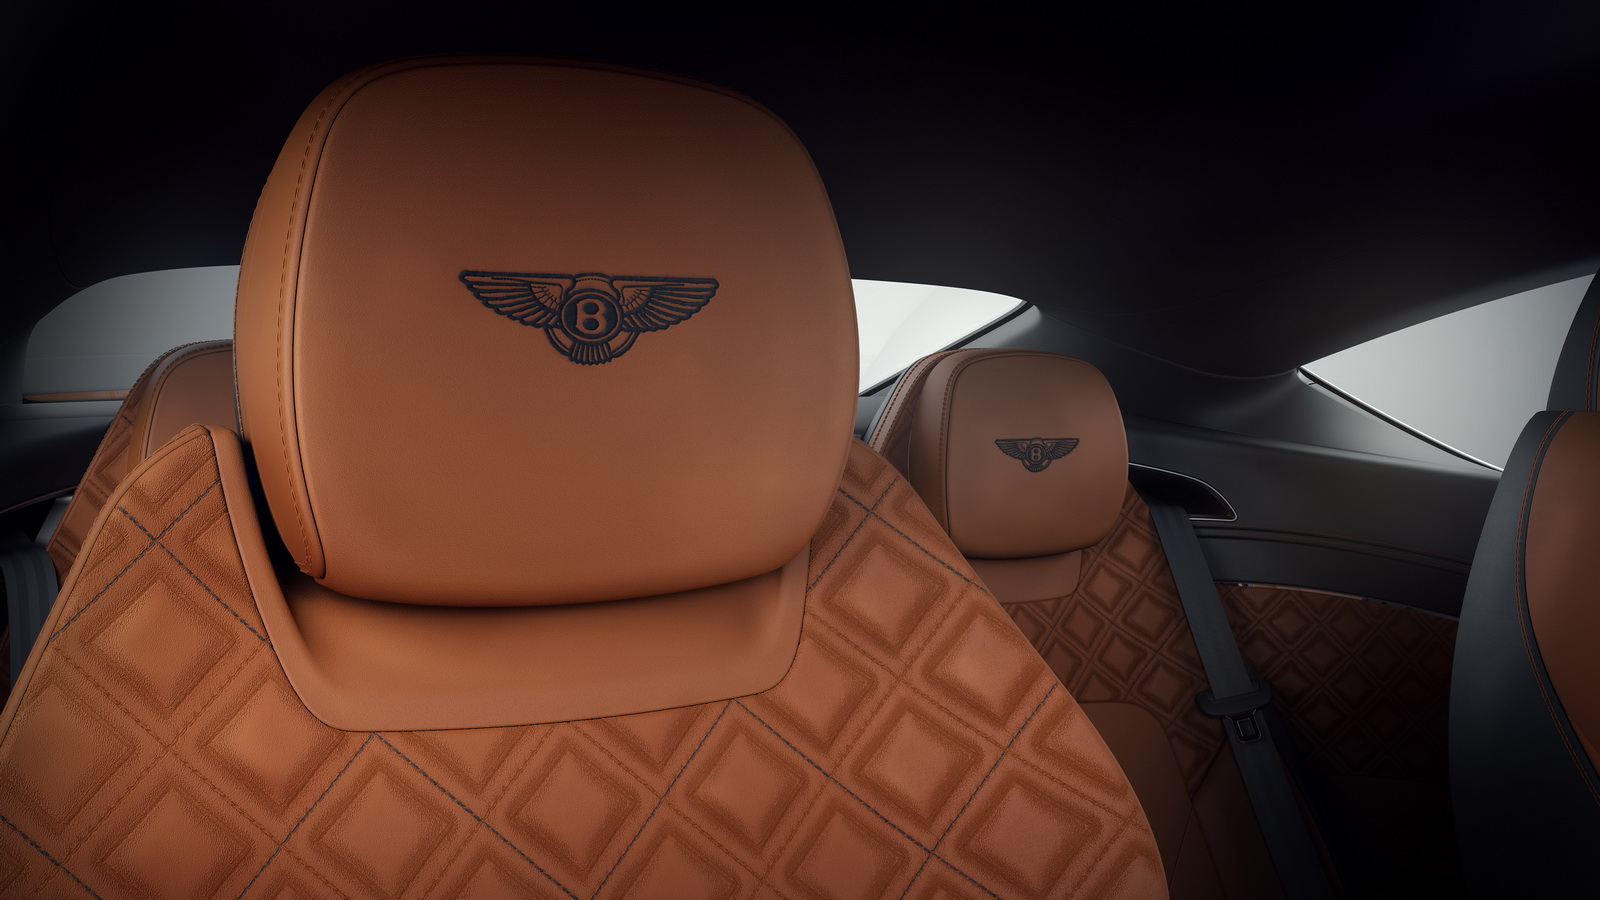 2018-bentley-continental-gt-first-edition-5